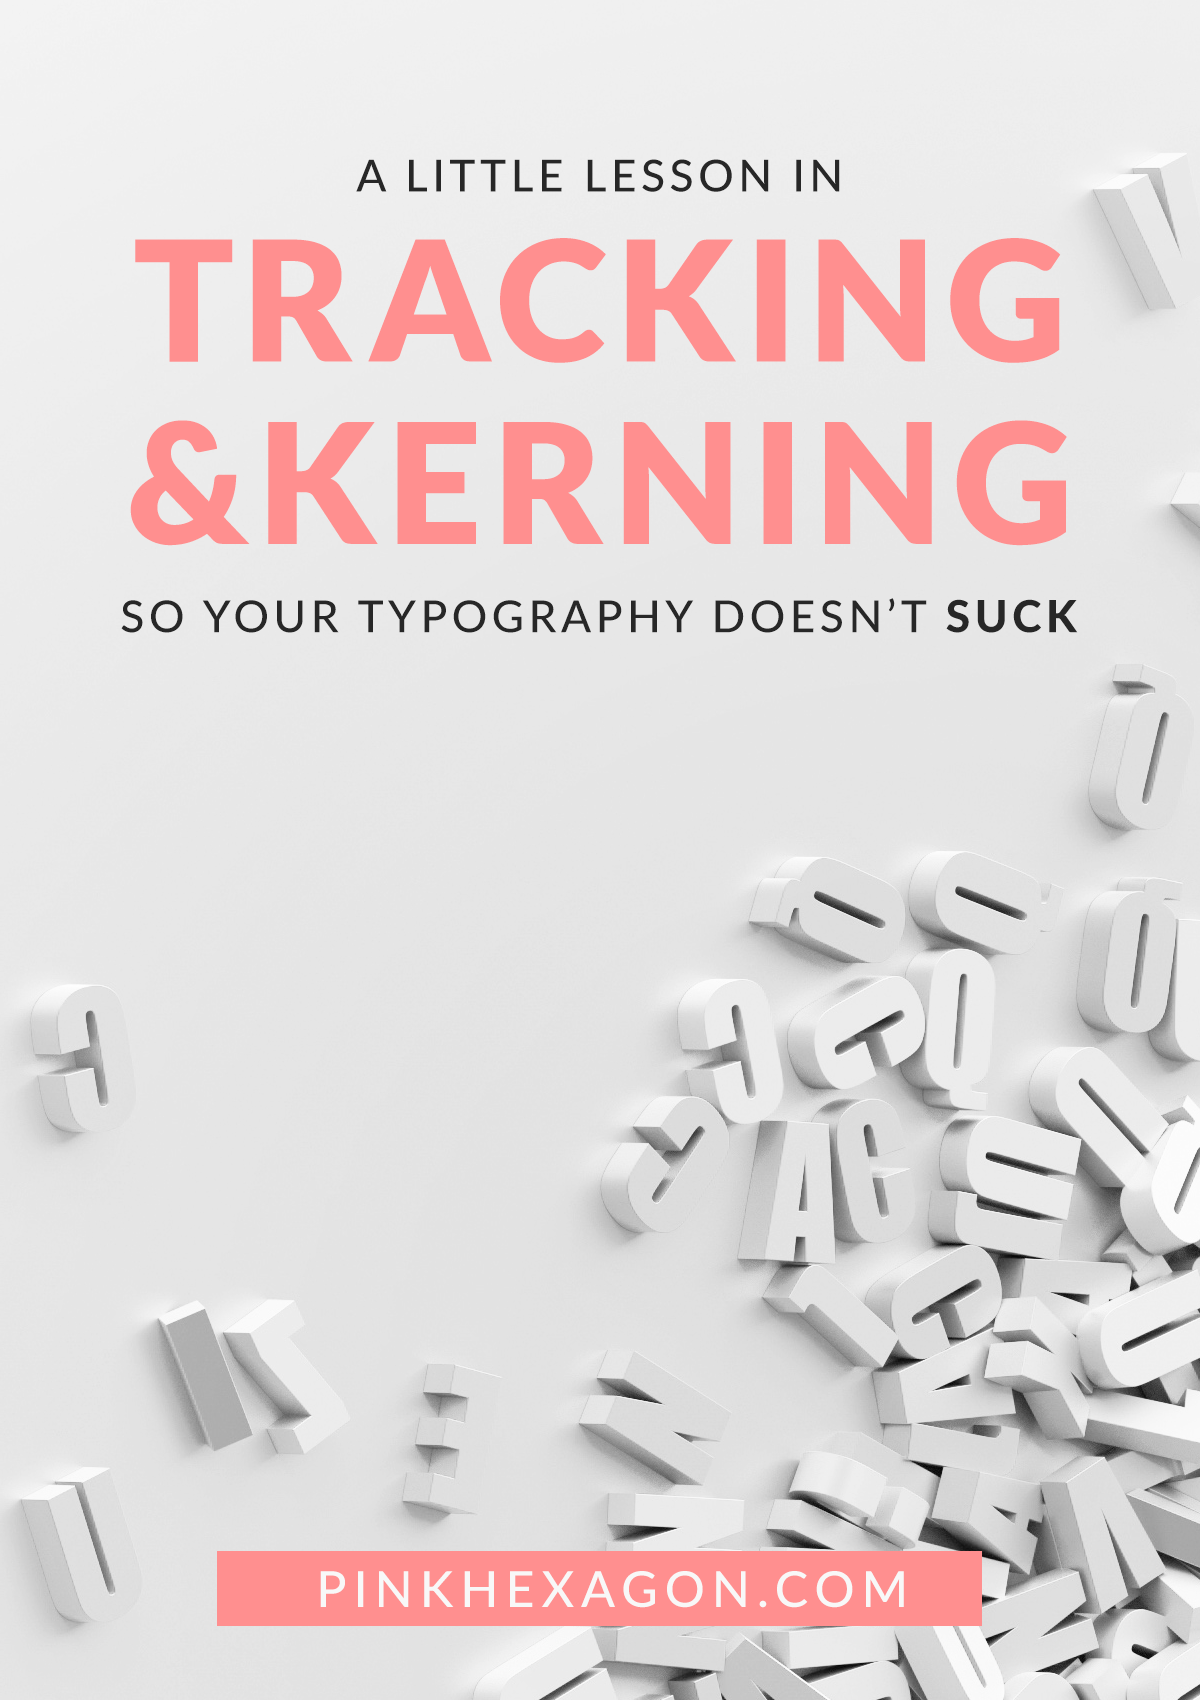 A lesson about tracking and kerning